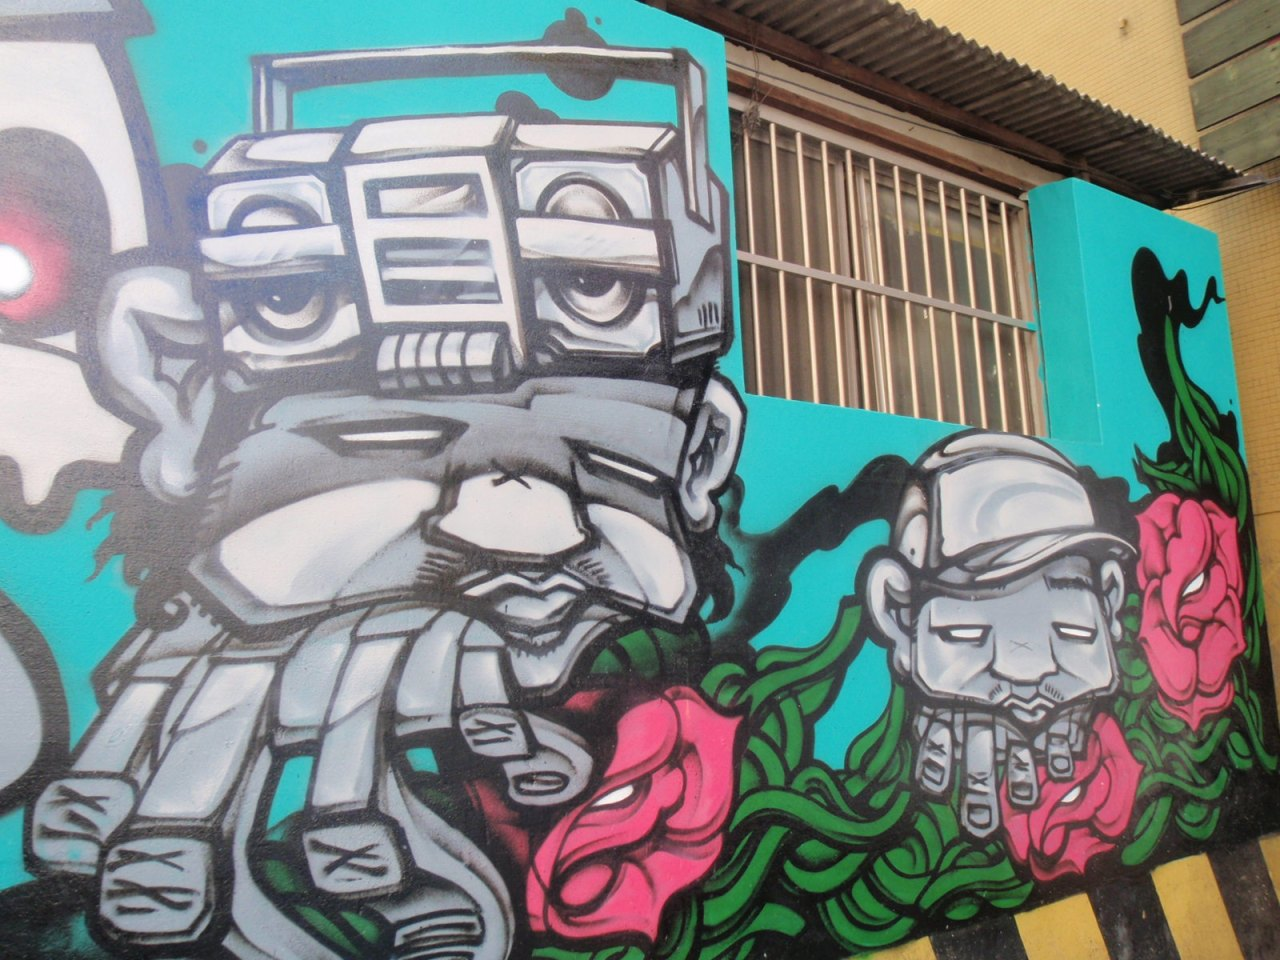 PNU represent – the street art of Busan